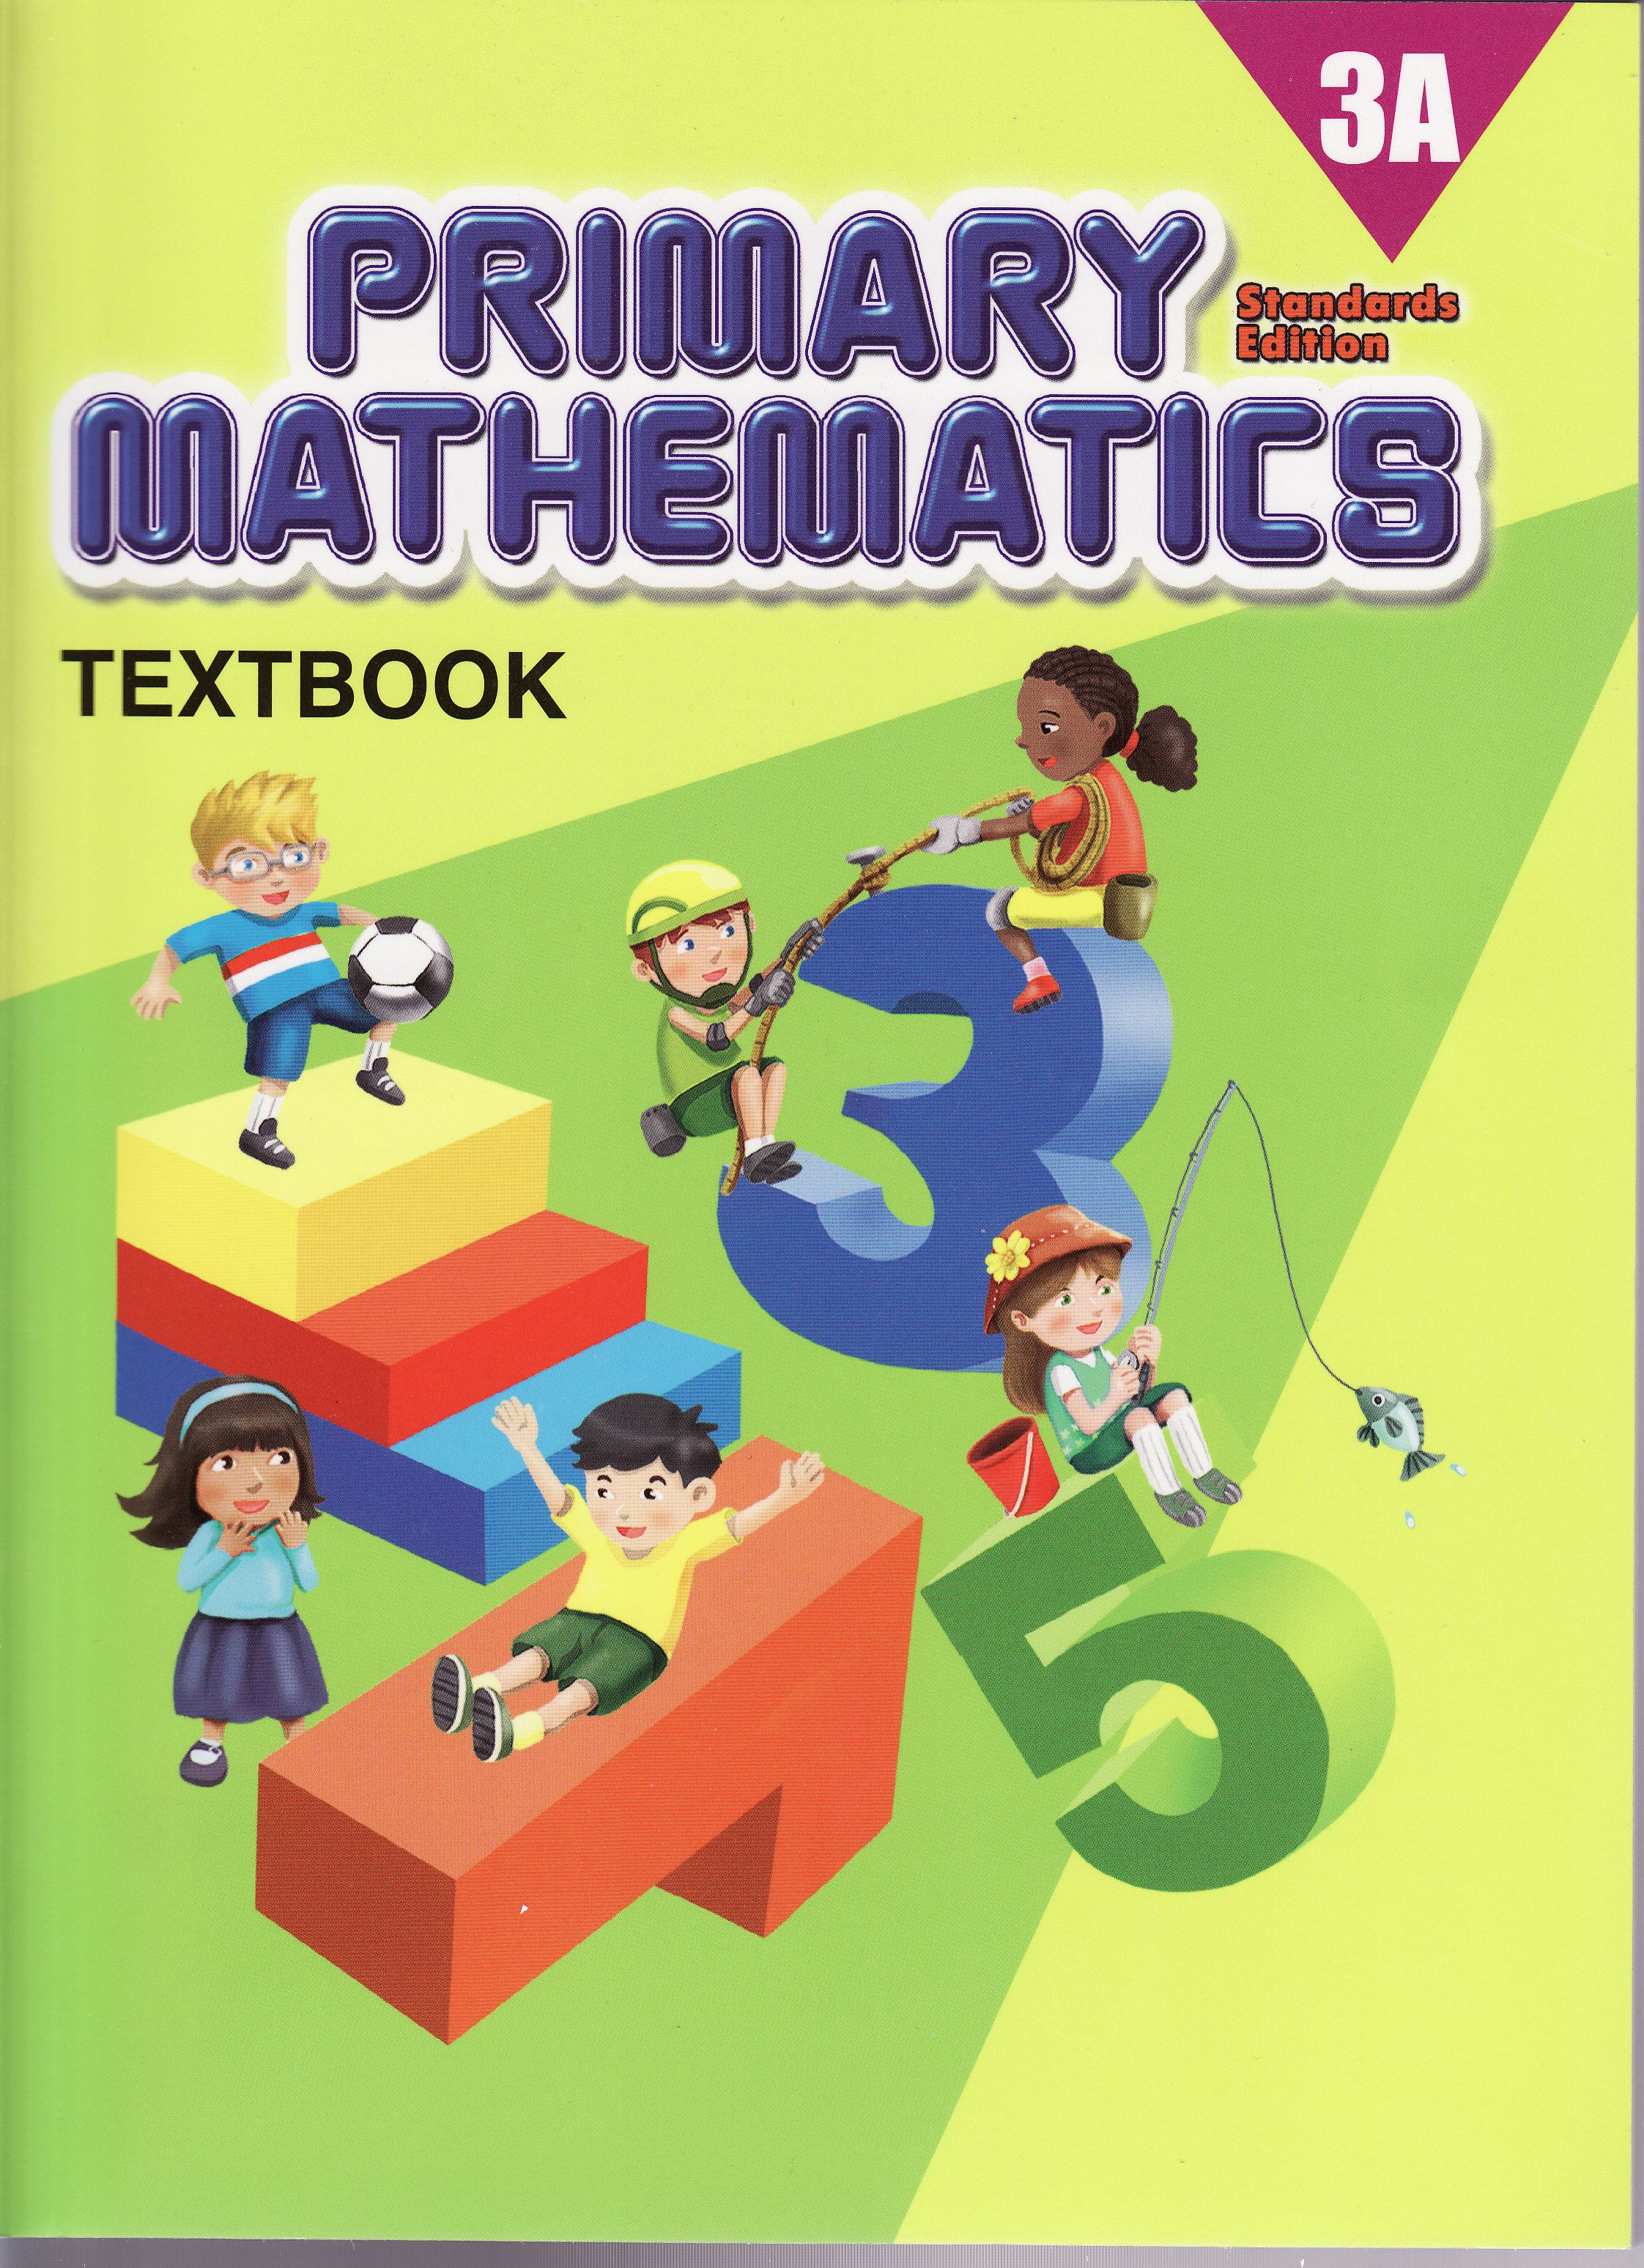 awesome Singapore Maths Textbooks Examples | Digital Marketing and ...